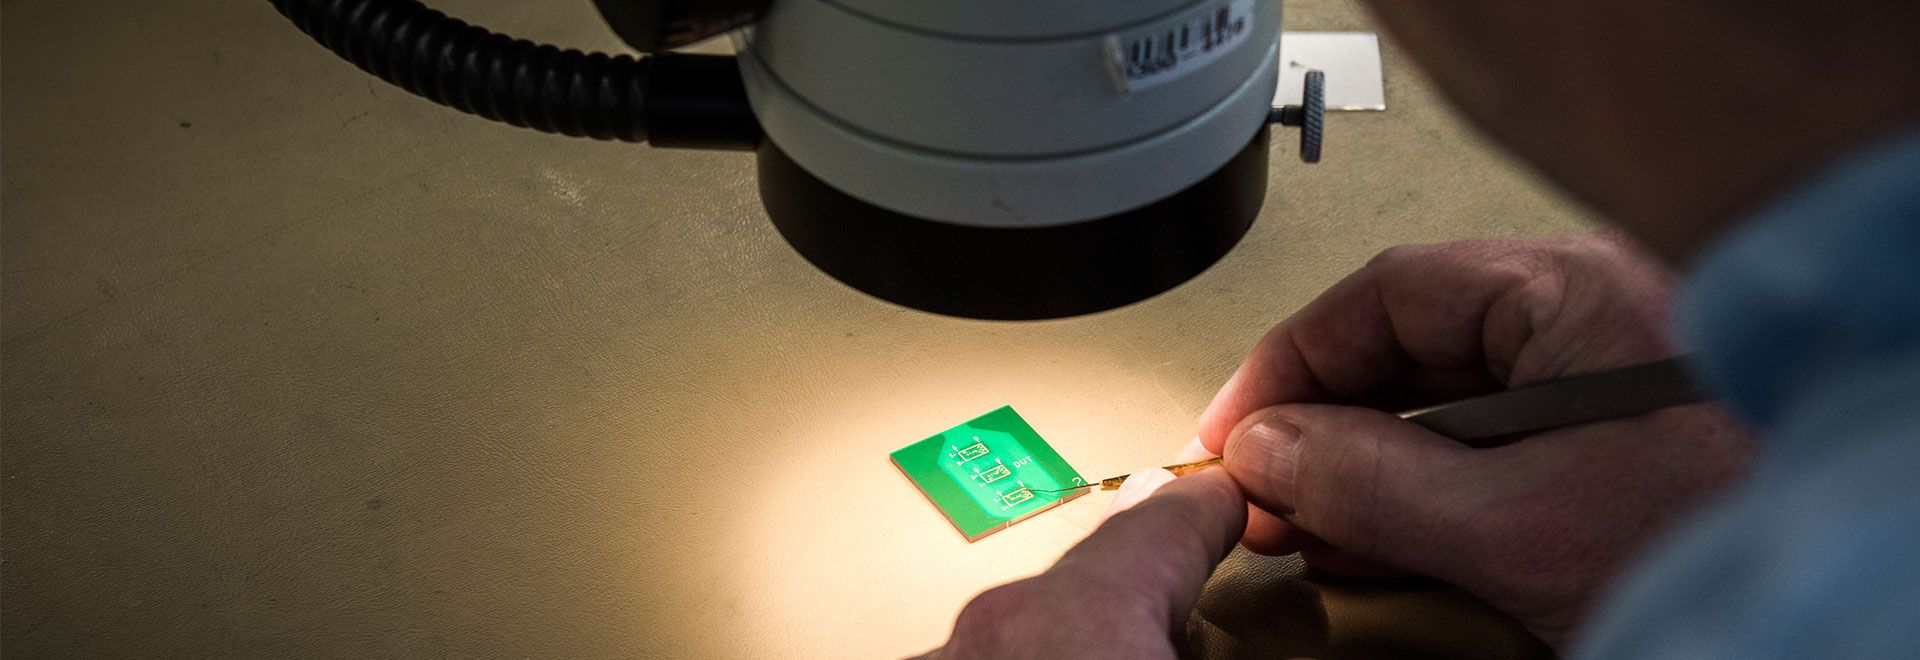 MEMS devices and micro assembly